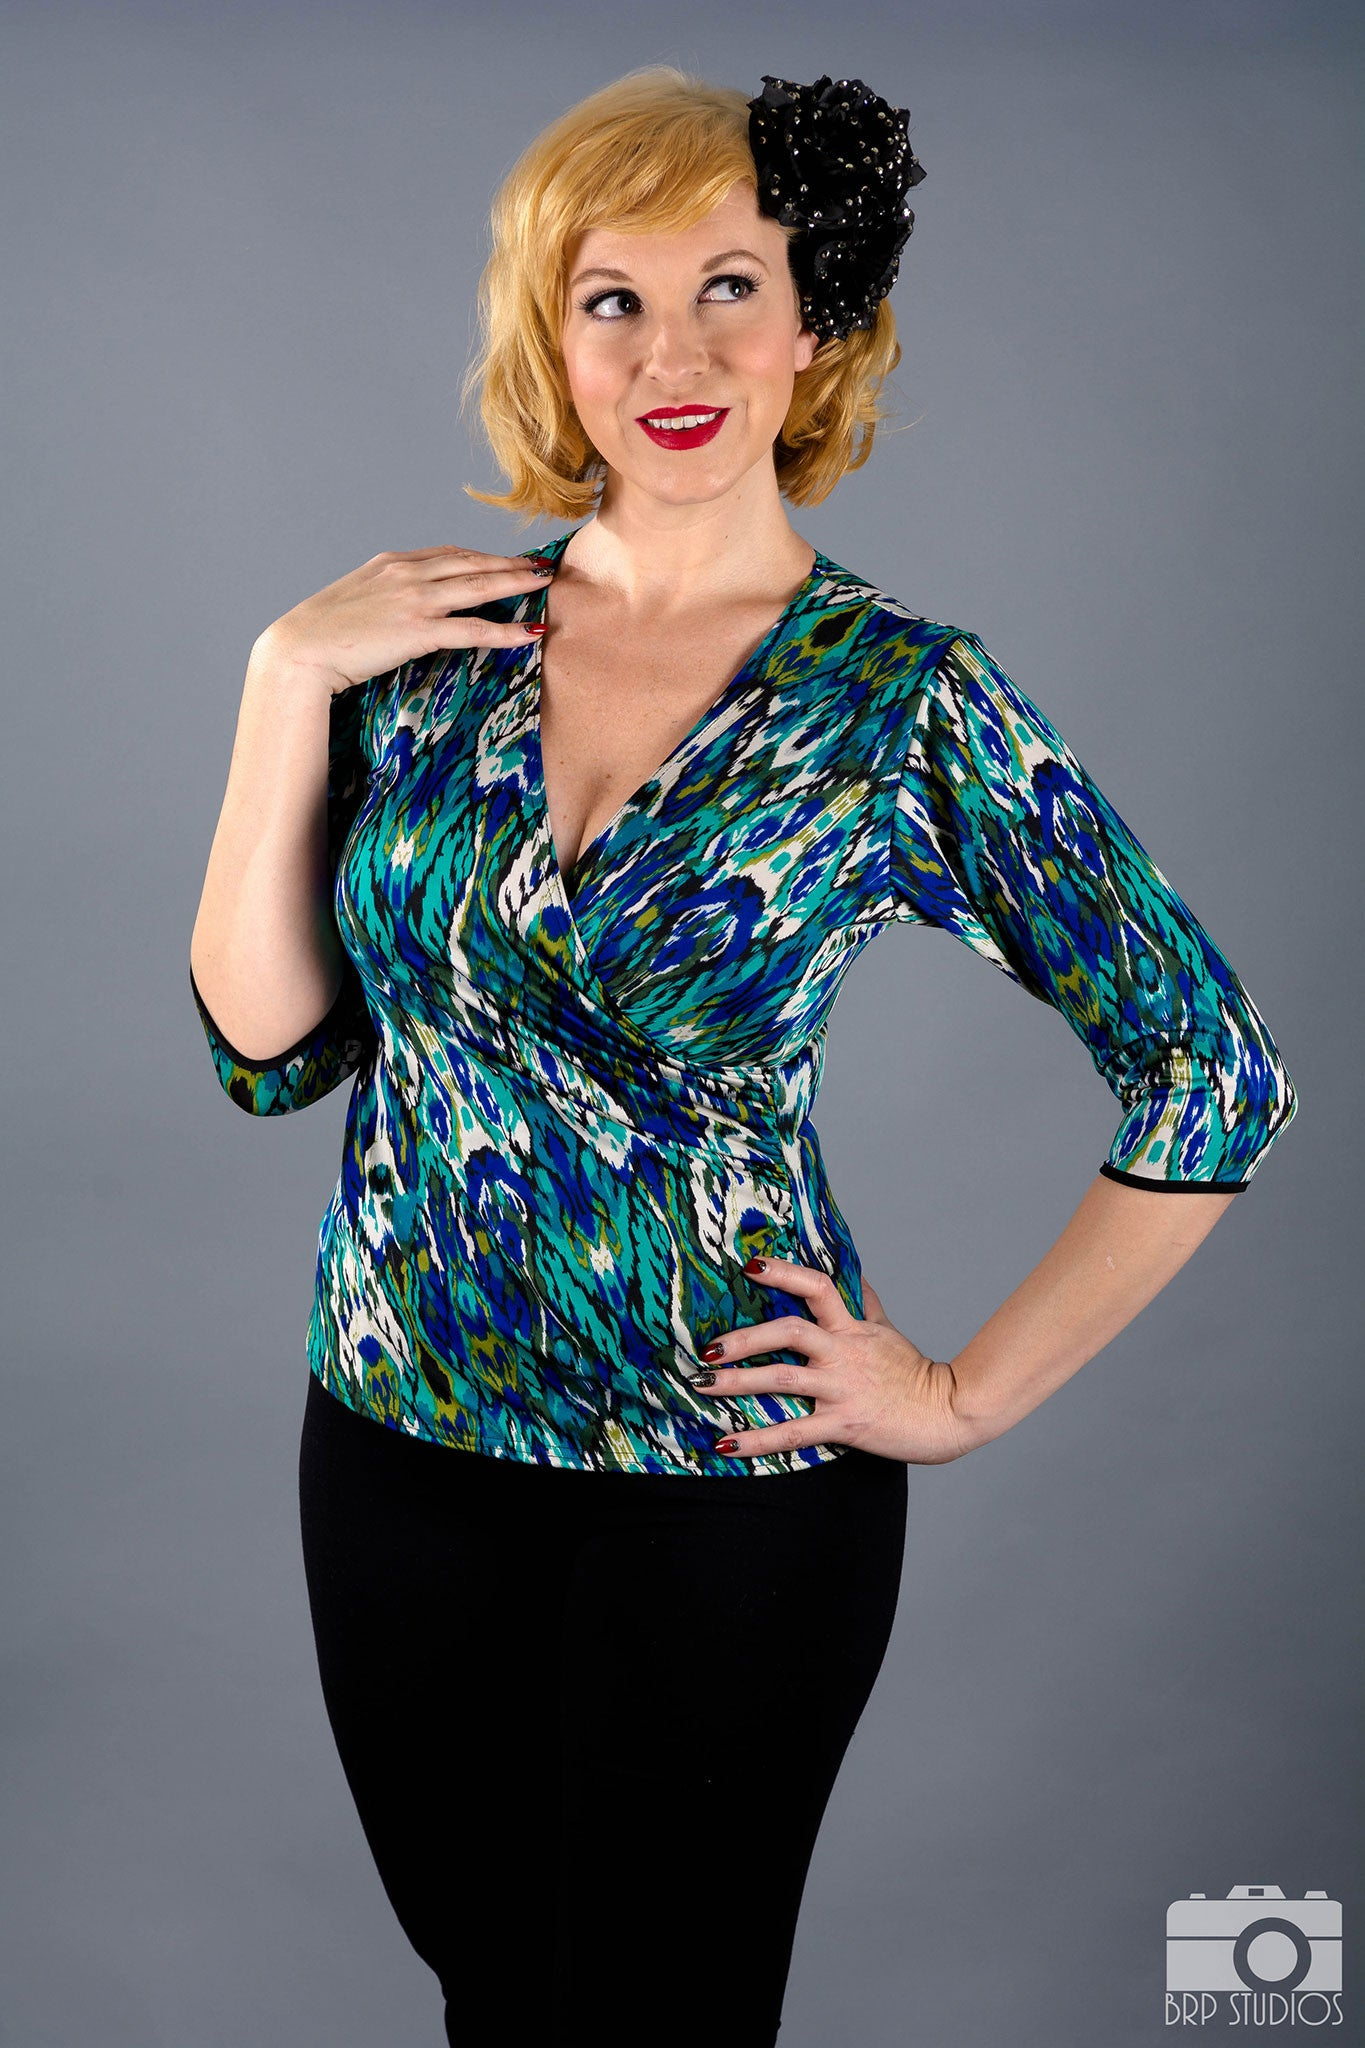 Style #T3 - Wrap Top With 3/4 Length Sleeves